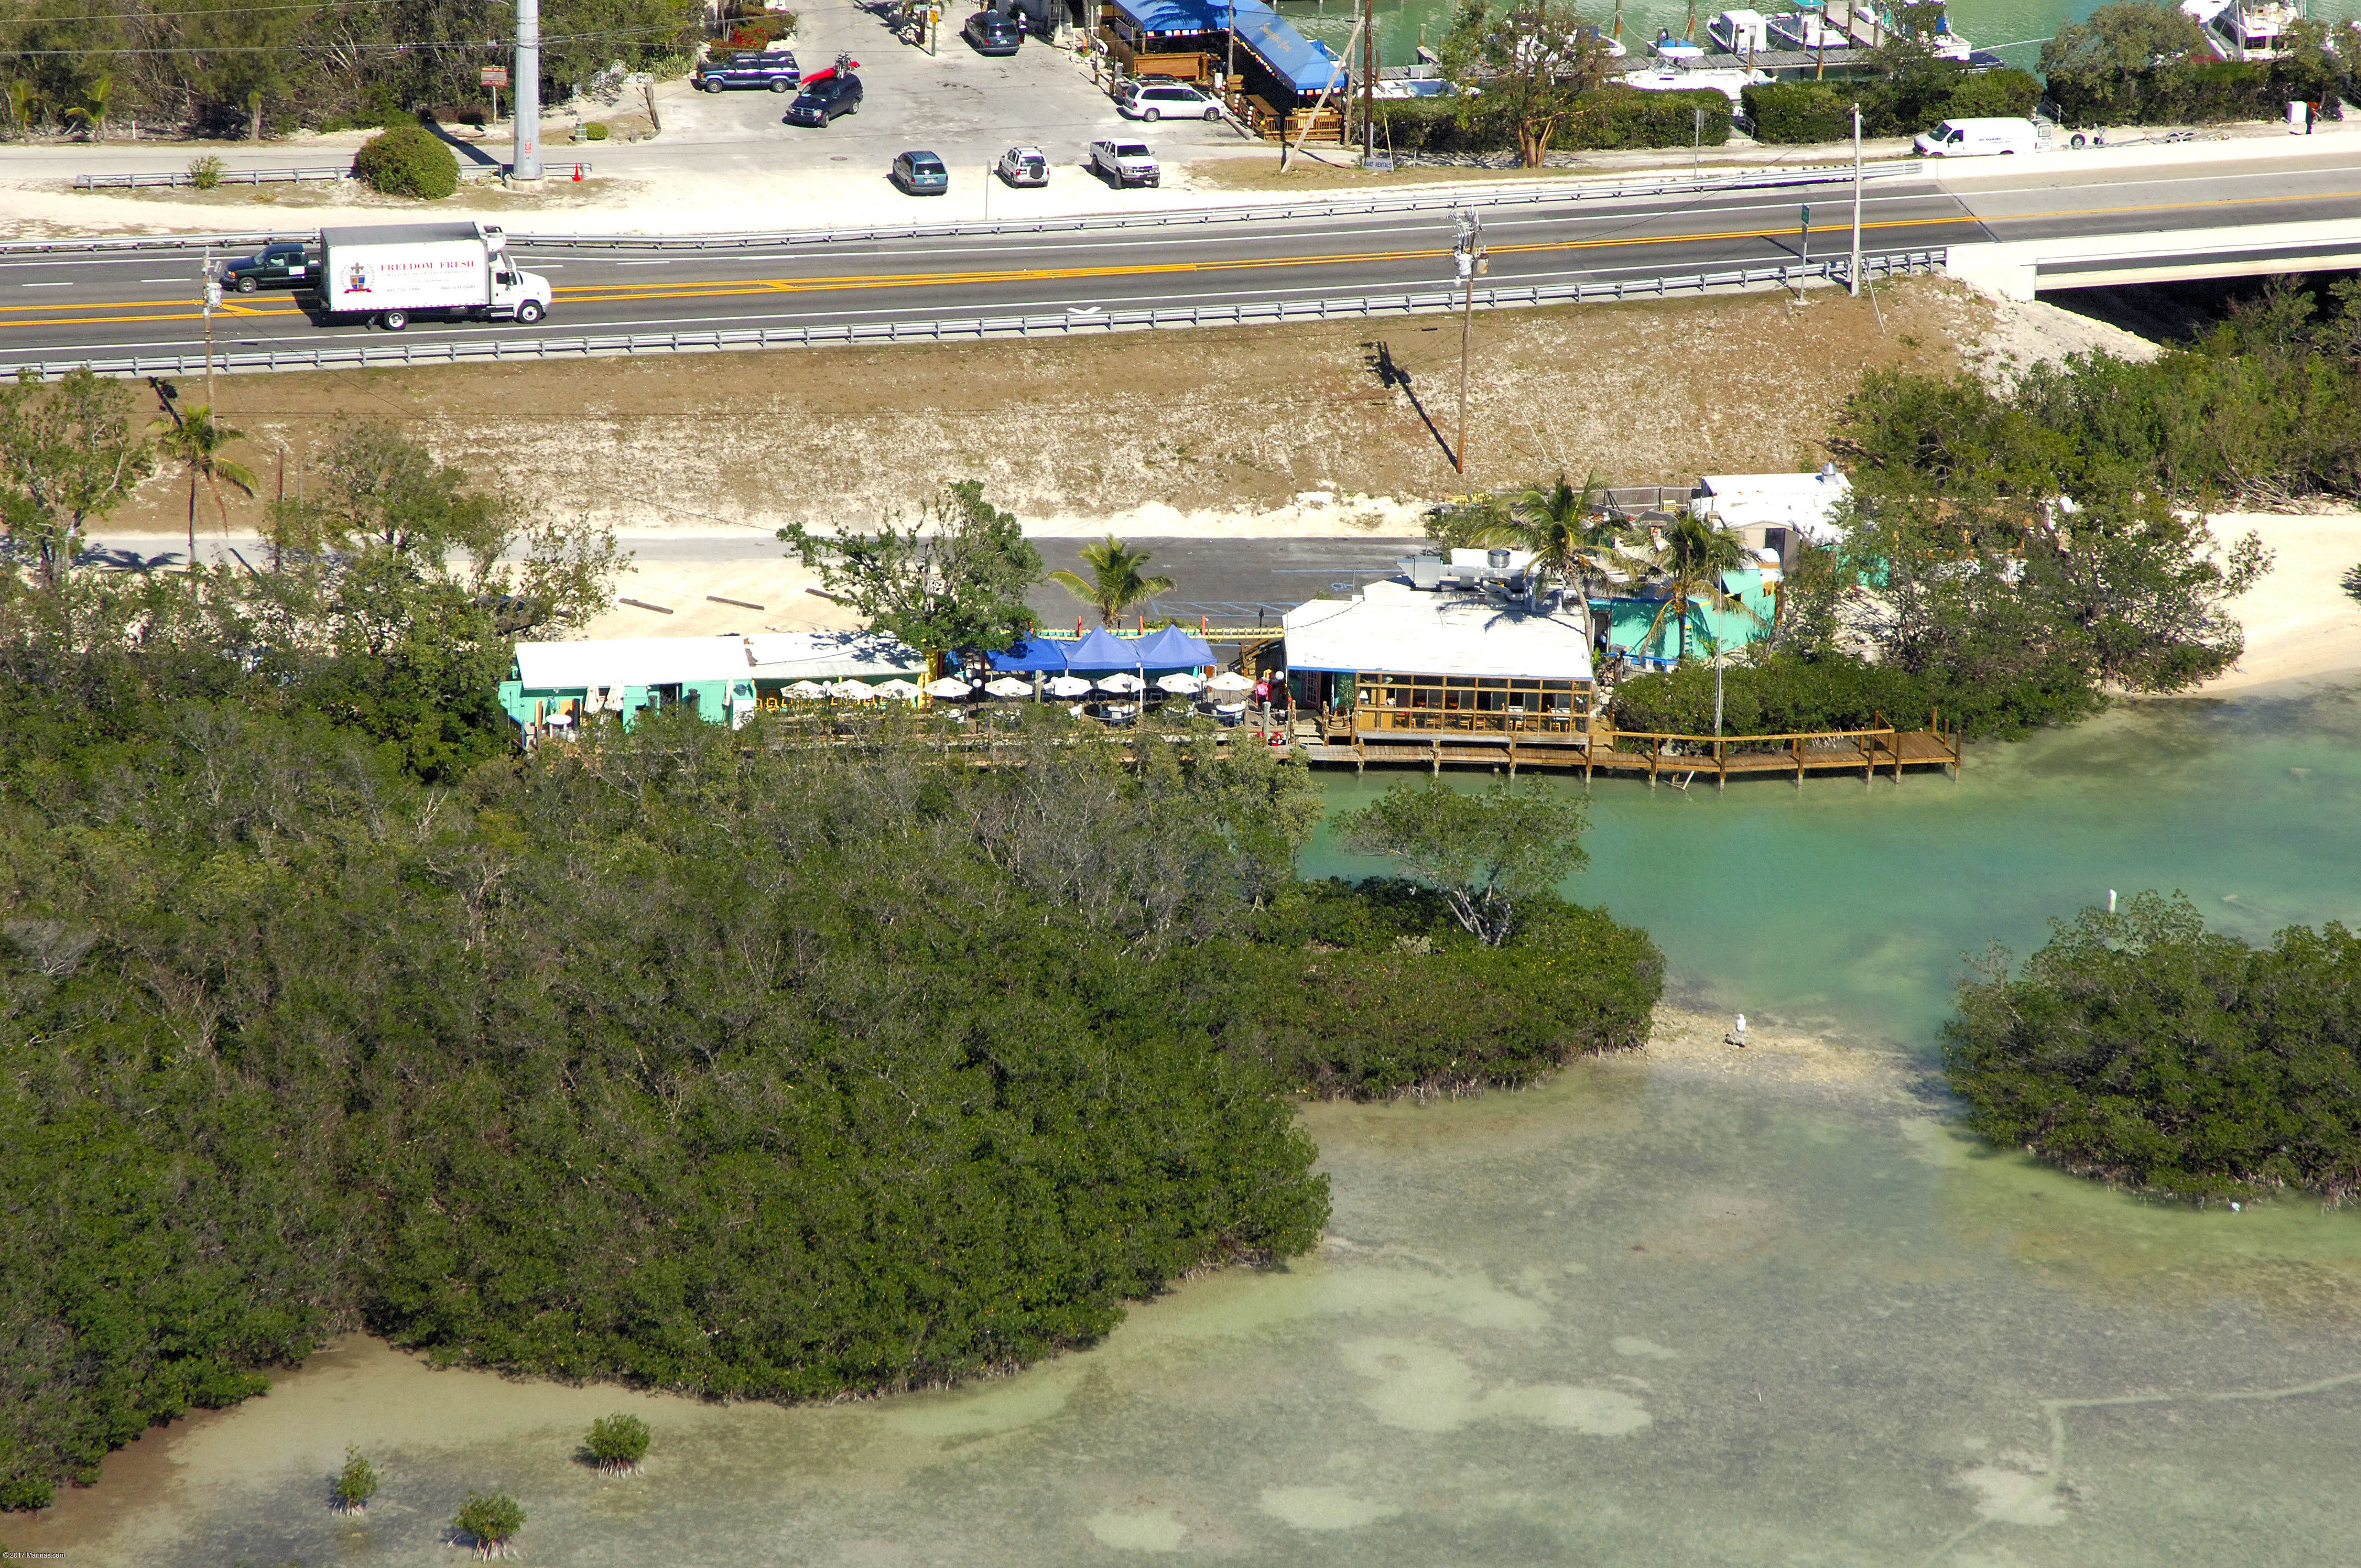 Island 39 s fish grill in indialantic fl united states for Island fish grill